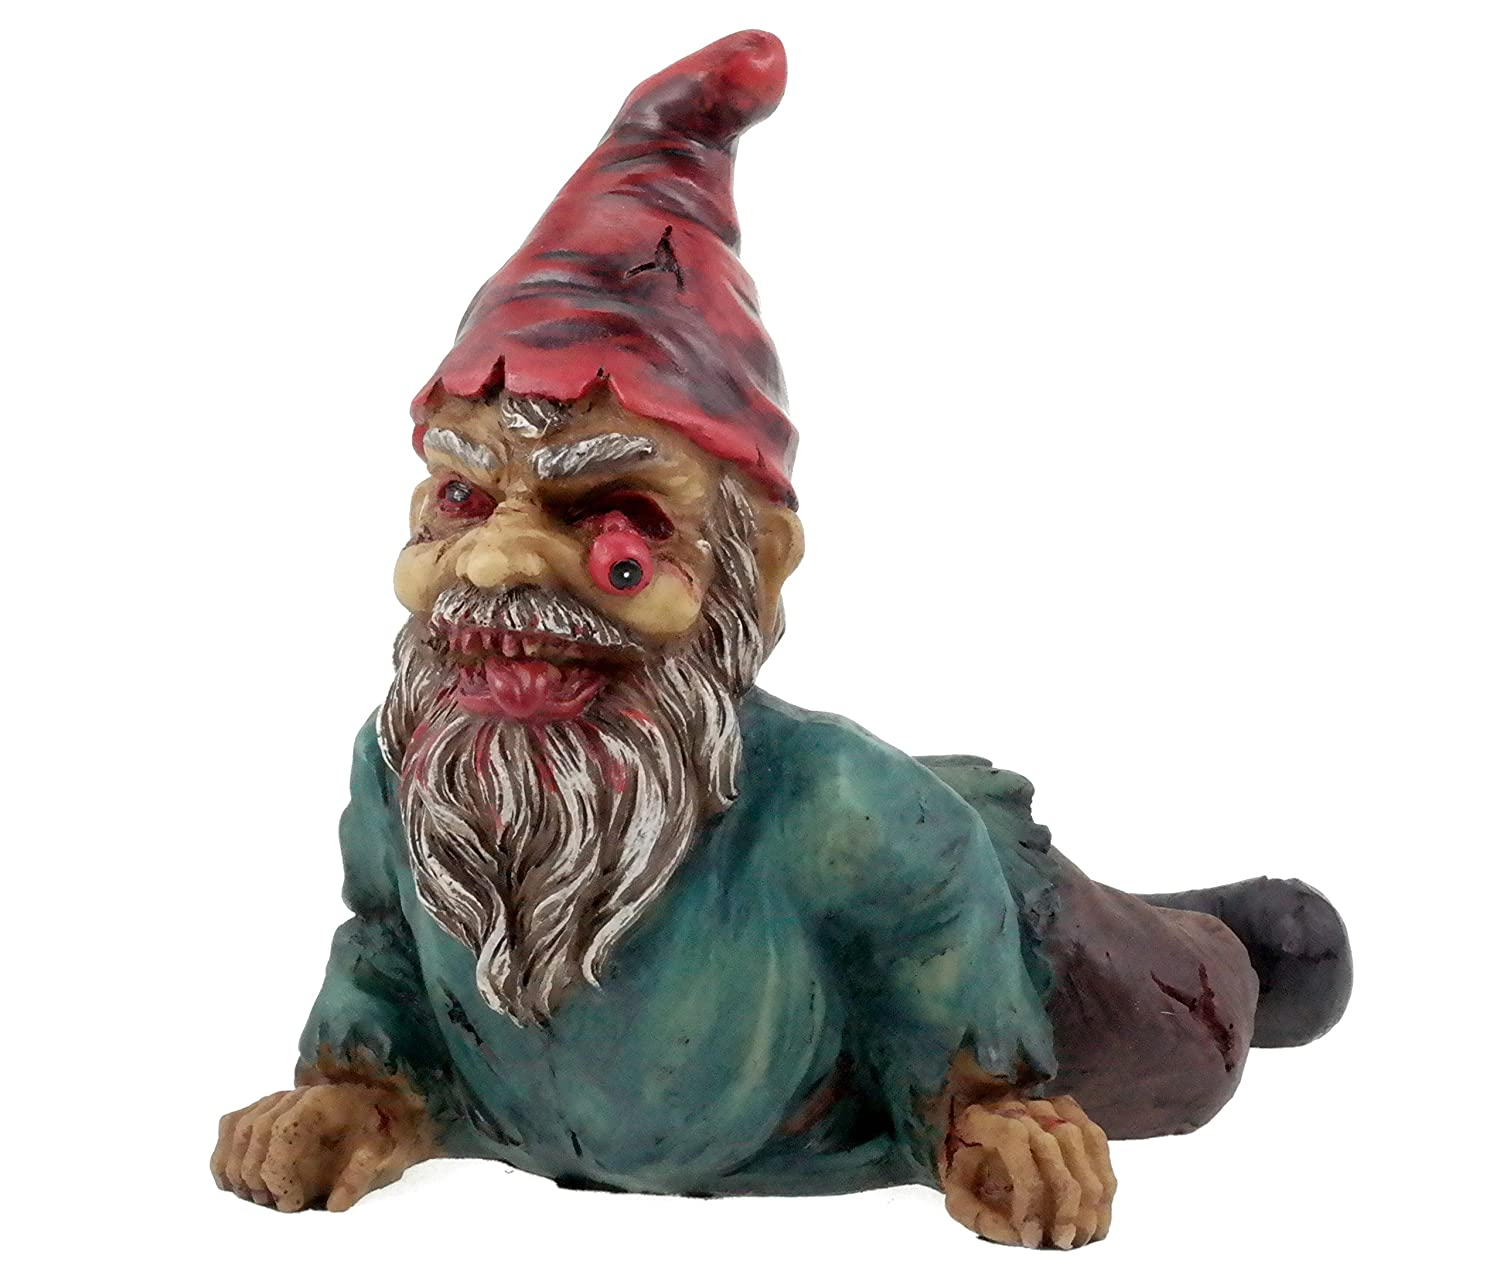 Manchester City Champ Gnome Statue Lawn Ornament Official Licensed Novelty Gift